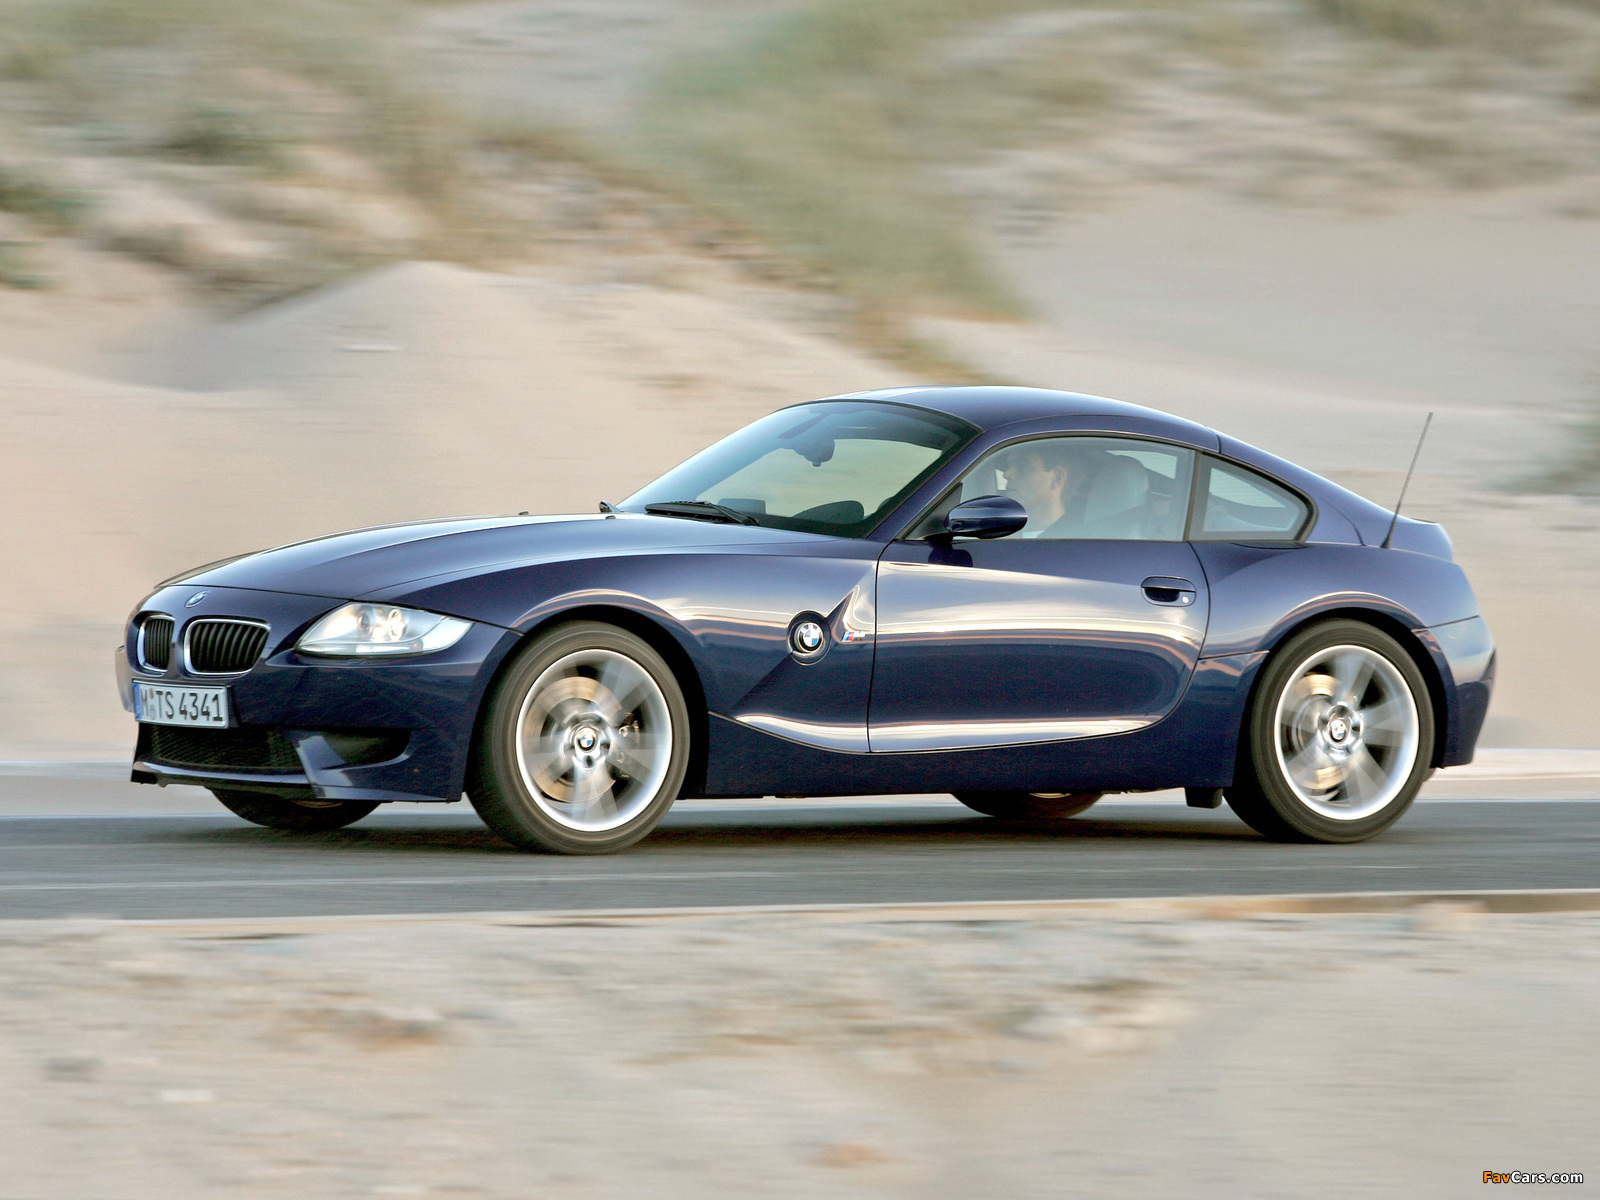 Bmw Z4 M Coupe E85 2006 08 Images 1600x1200